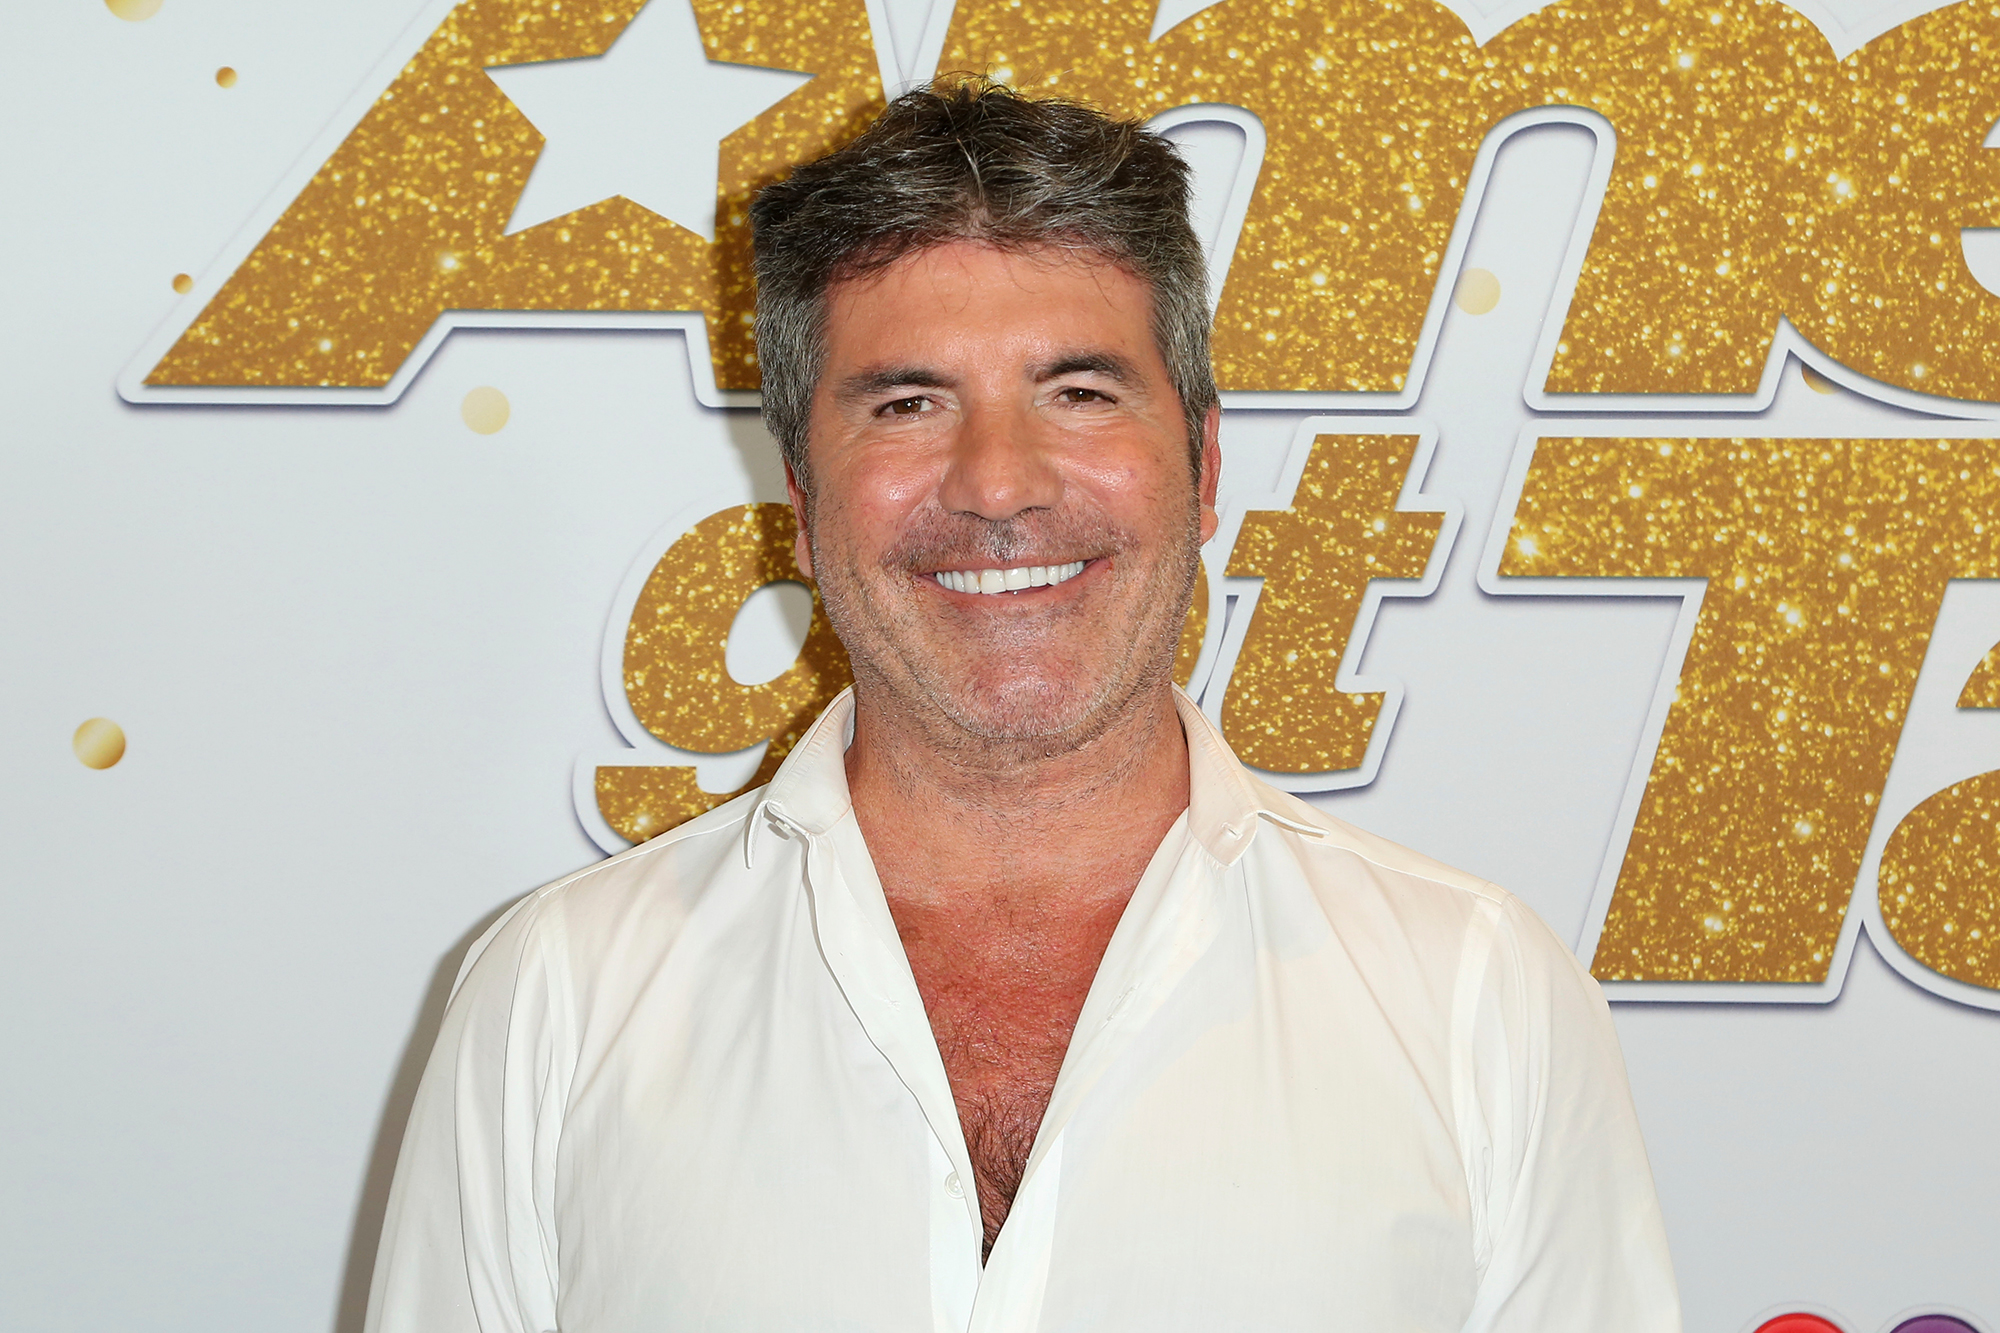 Simon Cowell To Be Bedridden From Crash For Six More Months